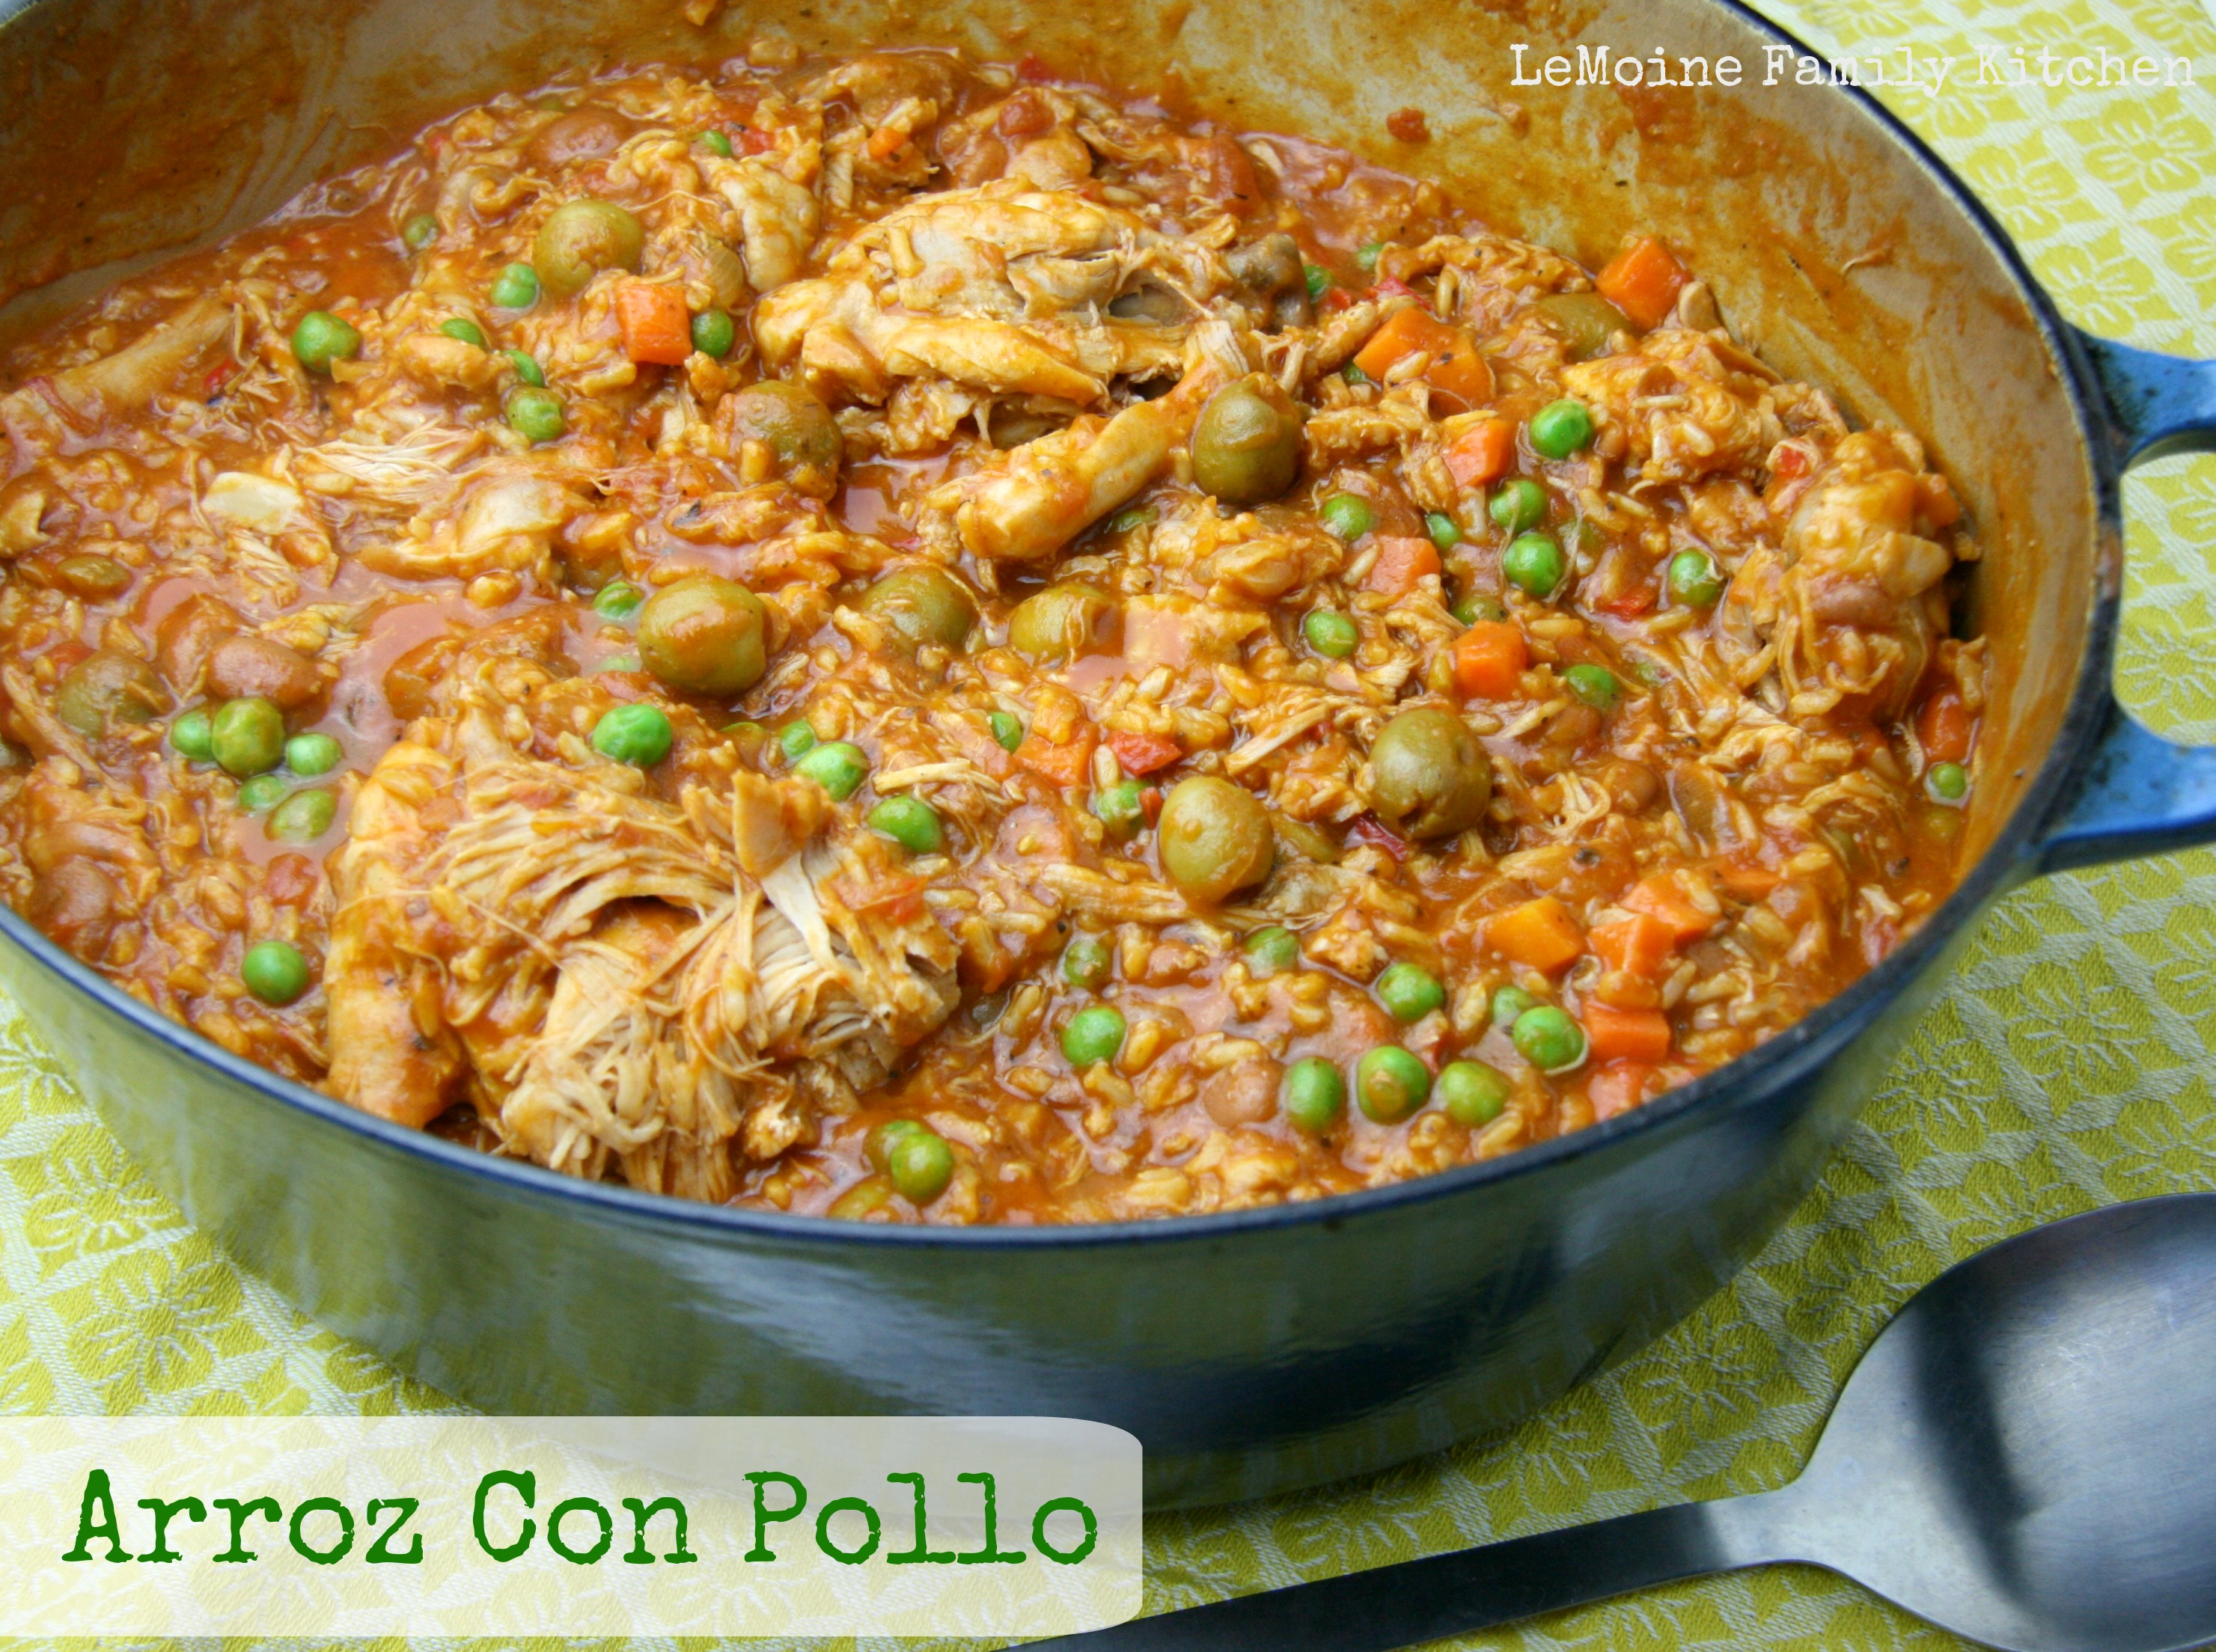 Arroz Con Pollo | LeMoine Family Kitchen #chicken #onepot #dinner #spanish #chickenandrice #chickenandolives #budgetfriendly